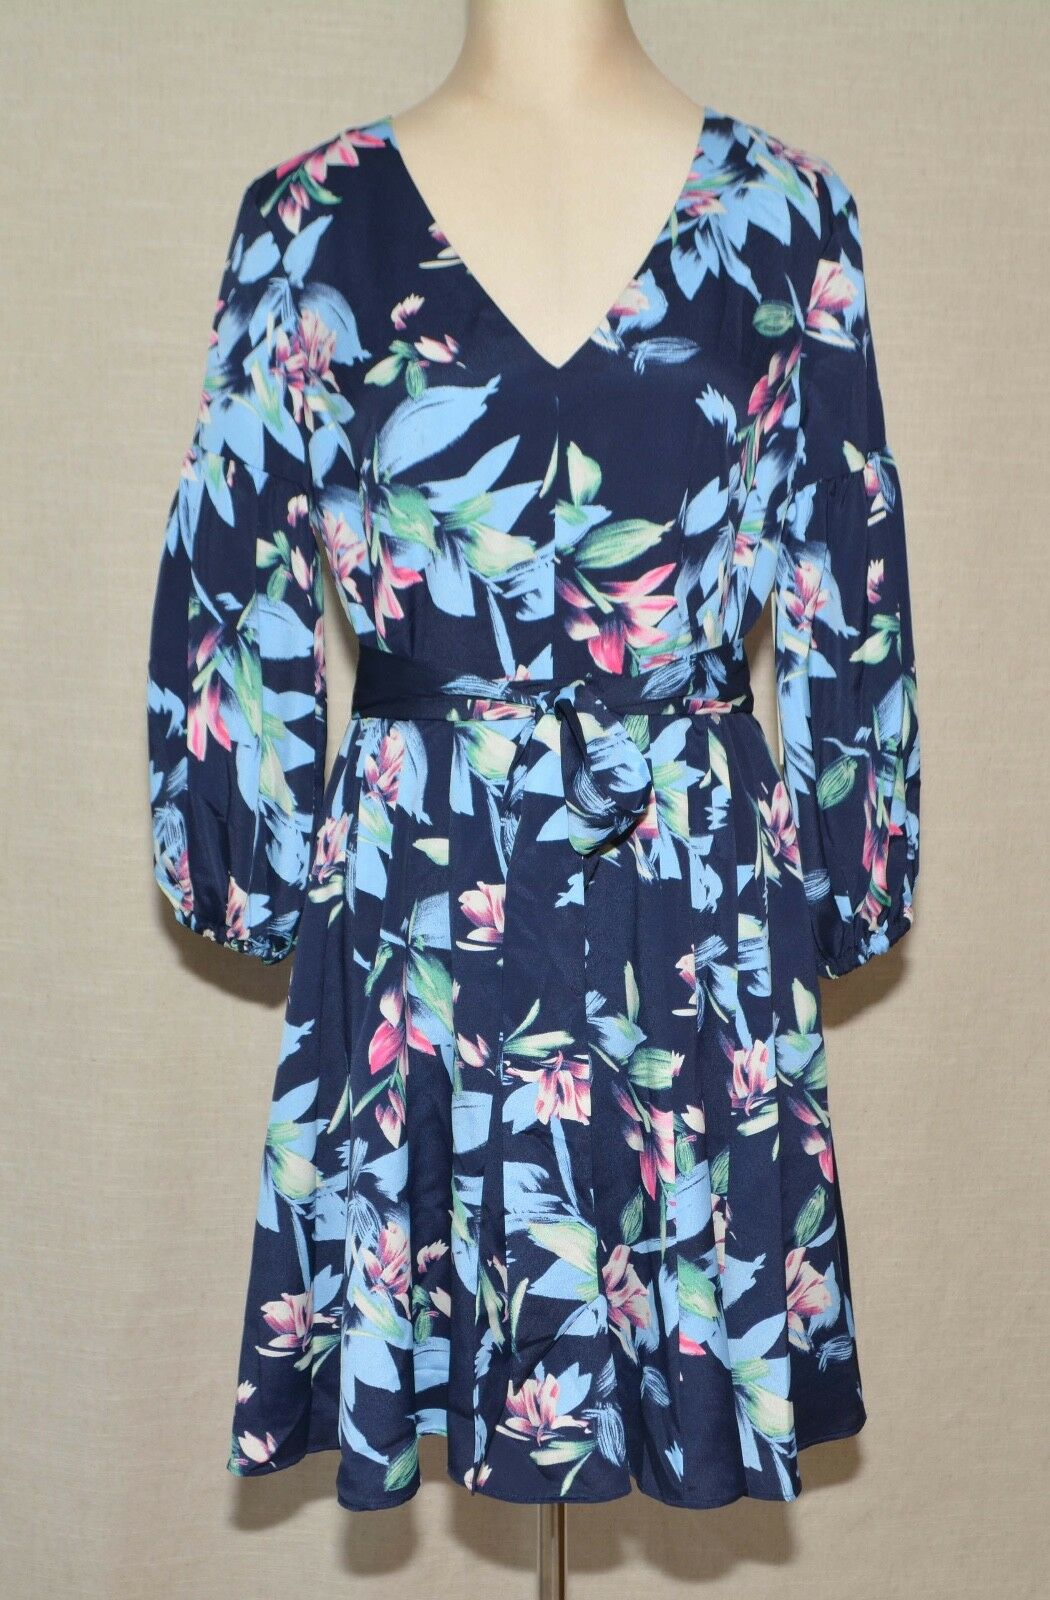 Eliza J Balloon Sleeve Sleeve Sleeve Fit & Glare Dress Navy Floral Petite 10 Fits PM   138 NWT 481fbf